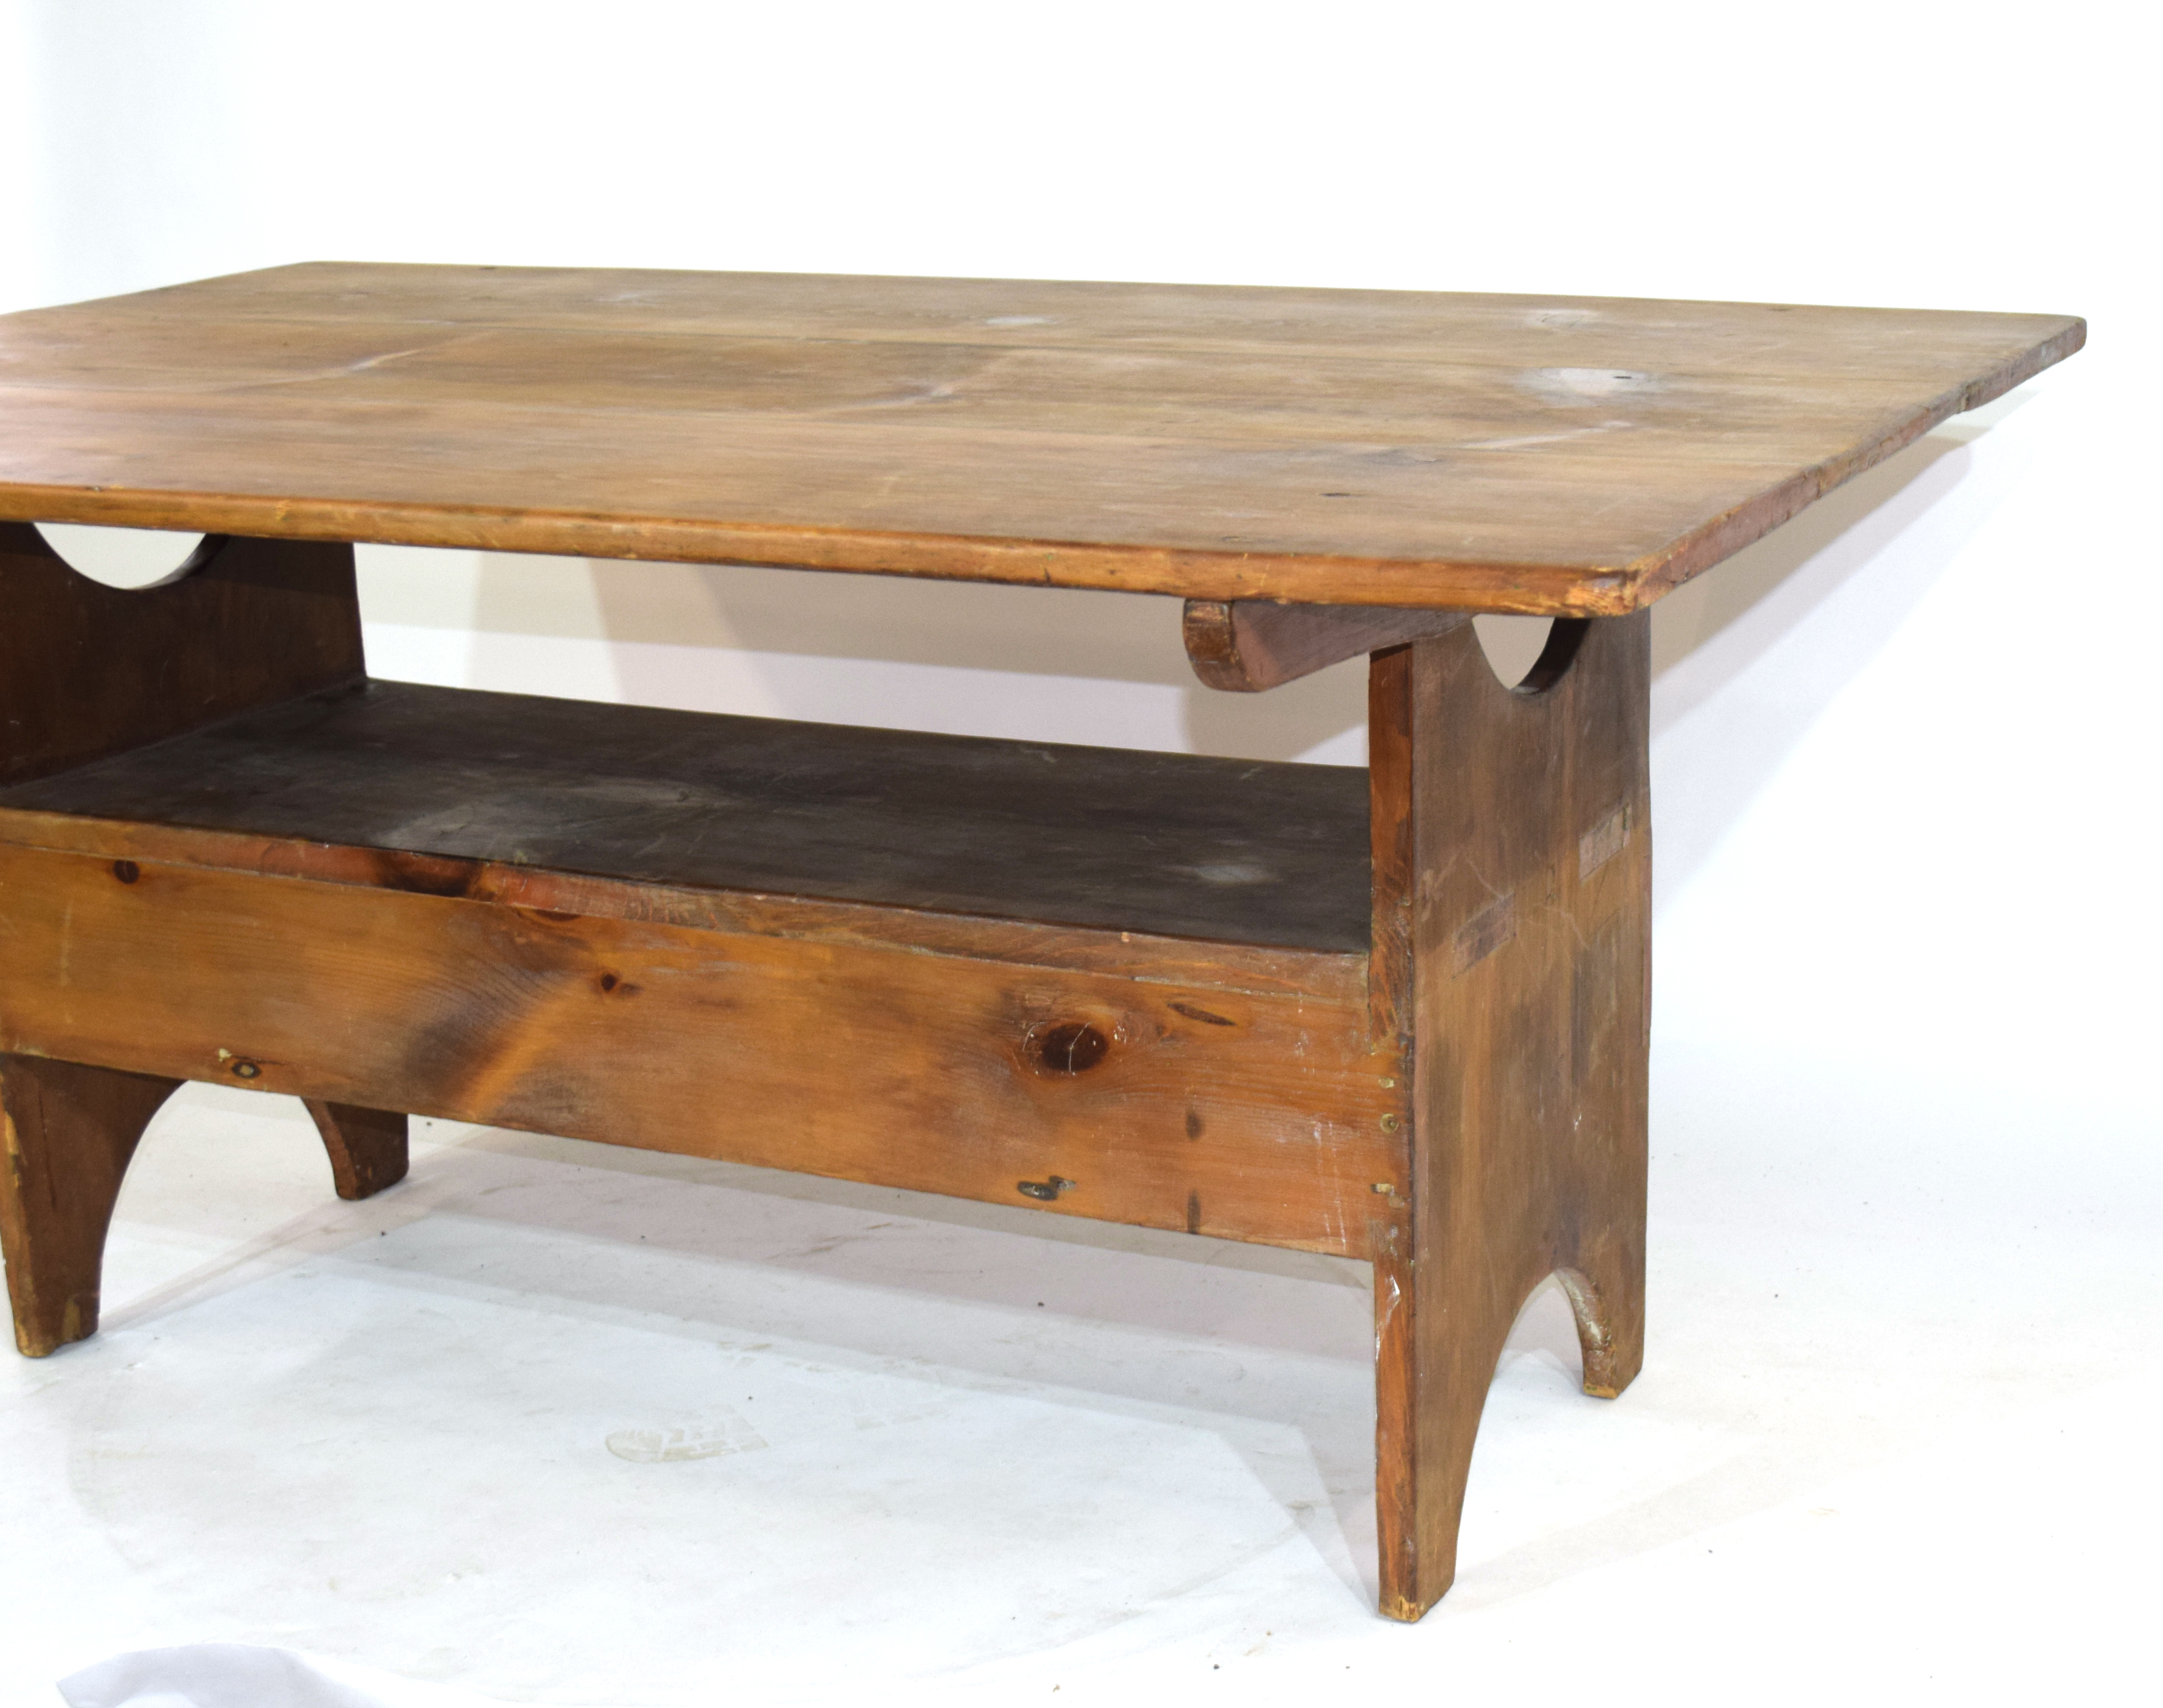 Unusual 20th century stained pine kitchen table, the rectangular top with pegged attachment to a - Image 4 of 4